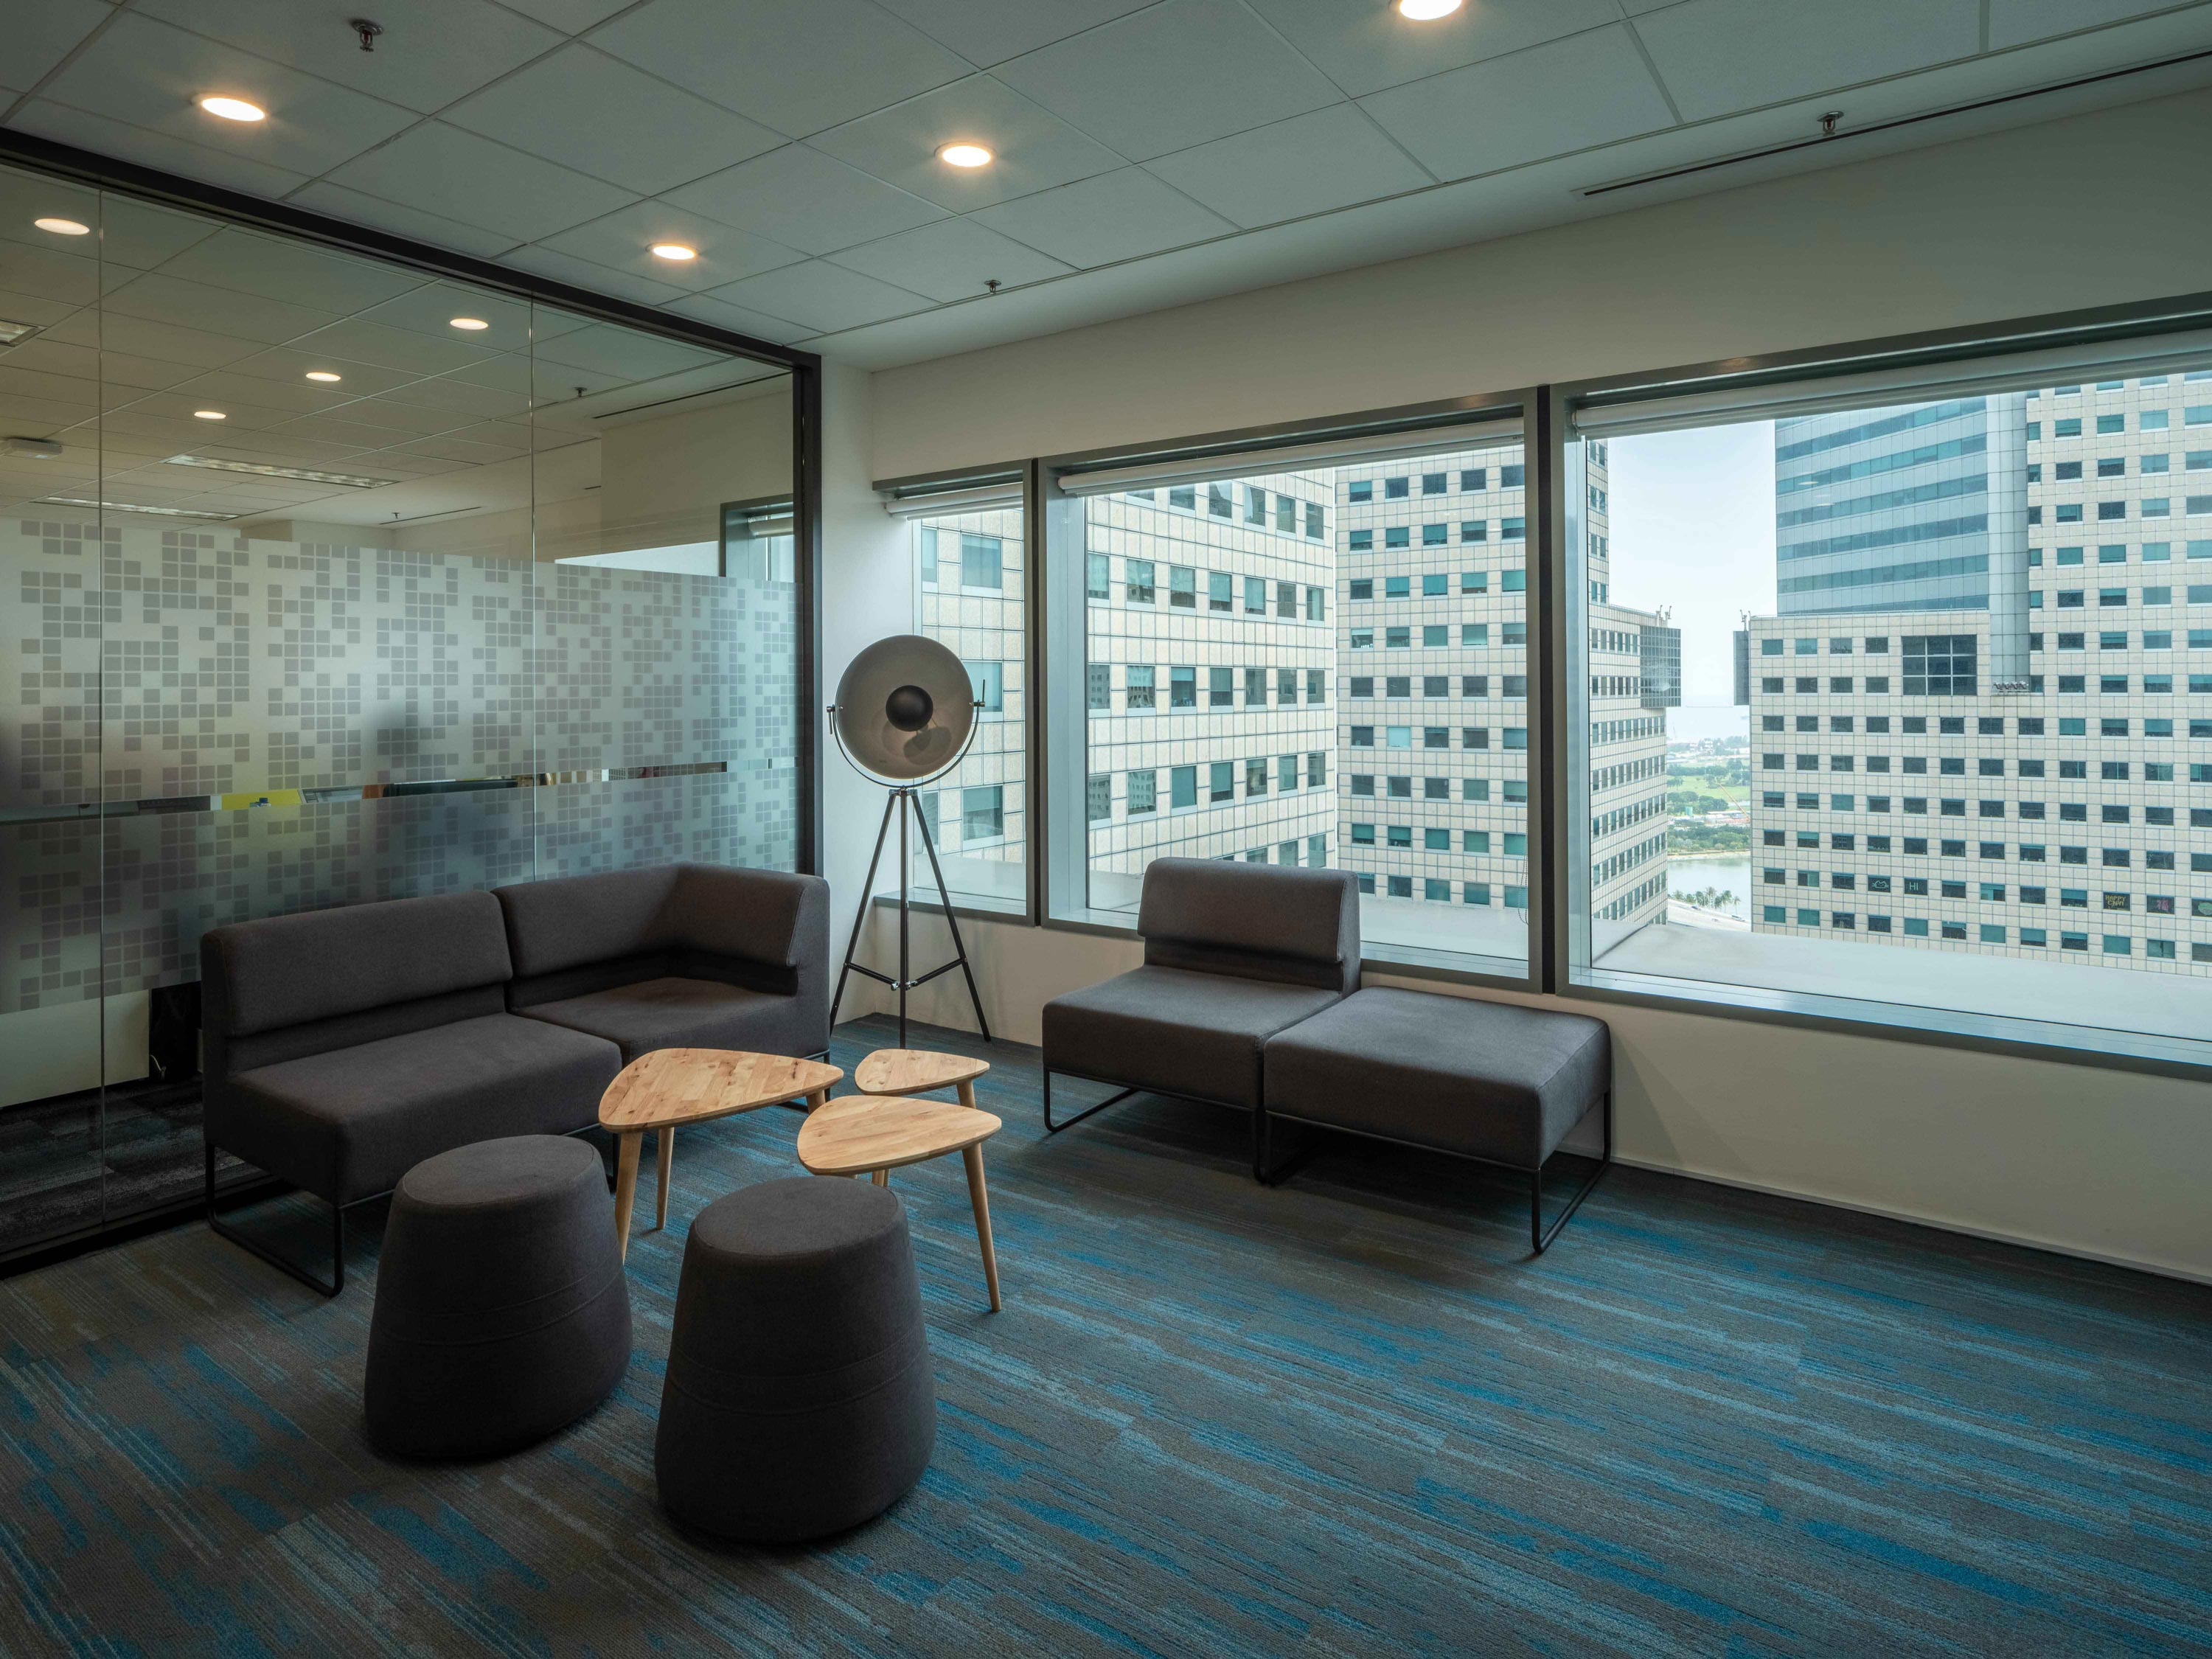 Nutanix's commercial workspace design by Space Matrix